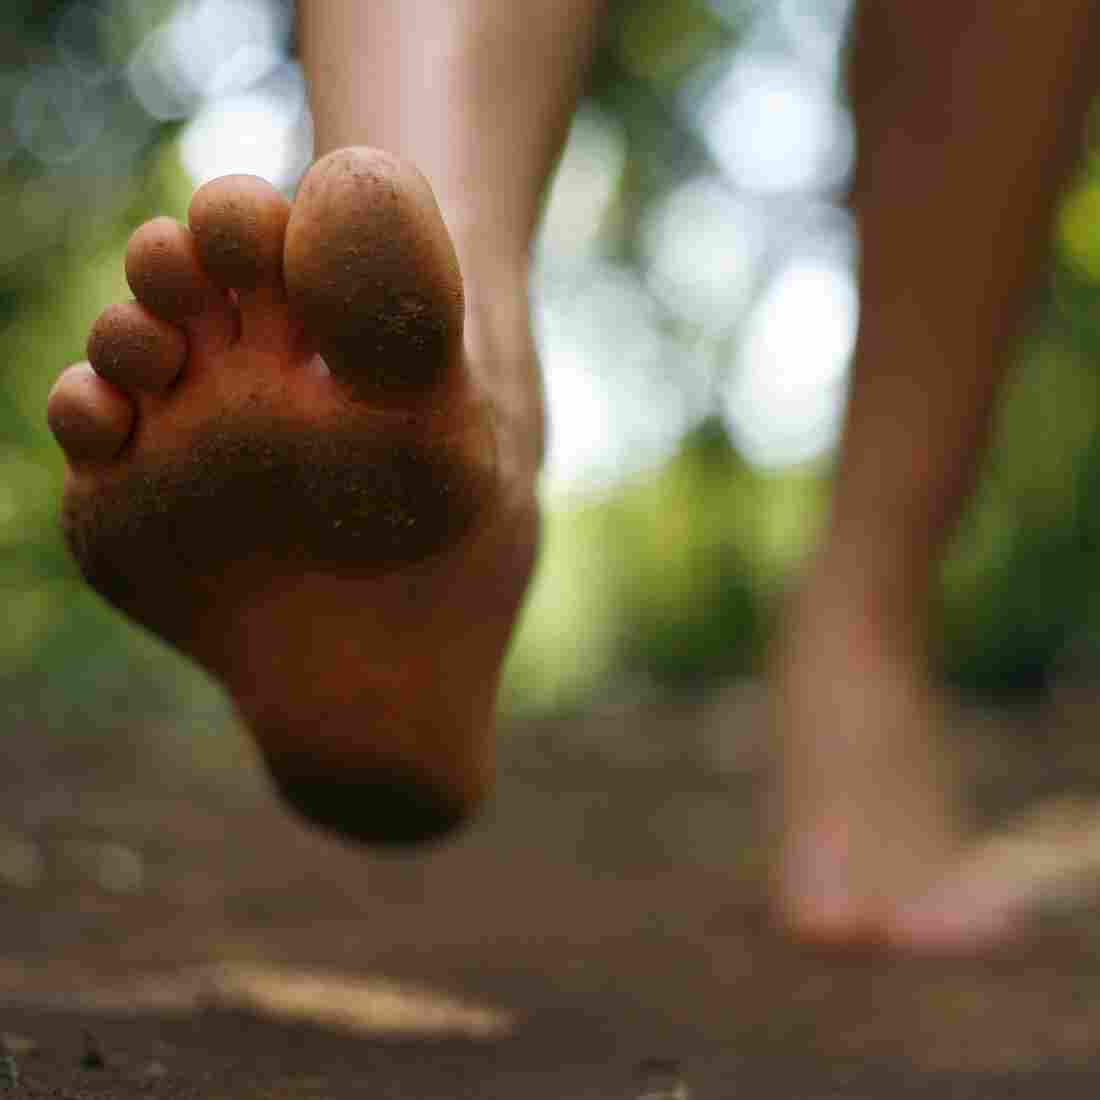 Golden Arches: Human Feet More Flexible Than We Thought